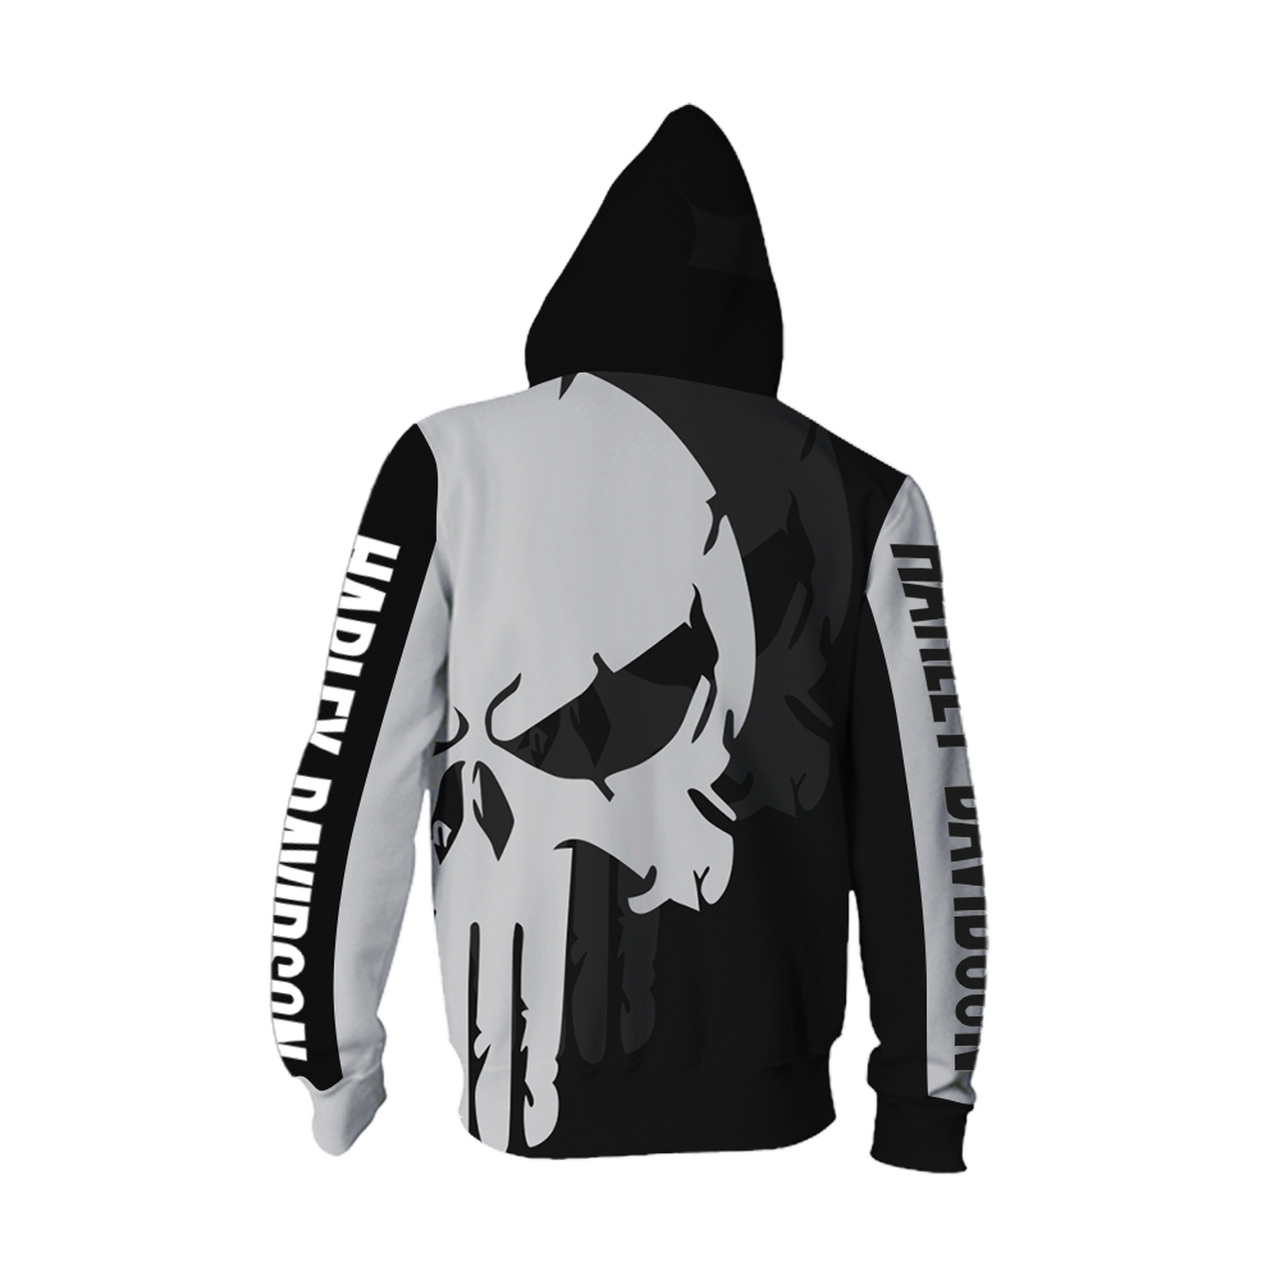 **(OFFICIAL-HARLEY-DAVIDSON-MOTORCYCLE-PULLOVER-SKULL-HOODIES/CUSTOM-3D-GRAPHIC-PRINTED-PUNISHER-SKULL-DESIGN/FEATURING-OFFICIAL-CUSTOM-HARLEY-LOGOS & OFFICIAL-CLASSIC-HARLEY-COLORS/3D-DOUBLE-SIDED-GRAPHIC-DESIGN/WARM-PREMIUM-HARLEY-RIDING-HOODIES)**